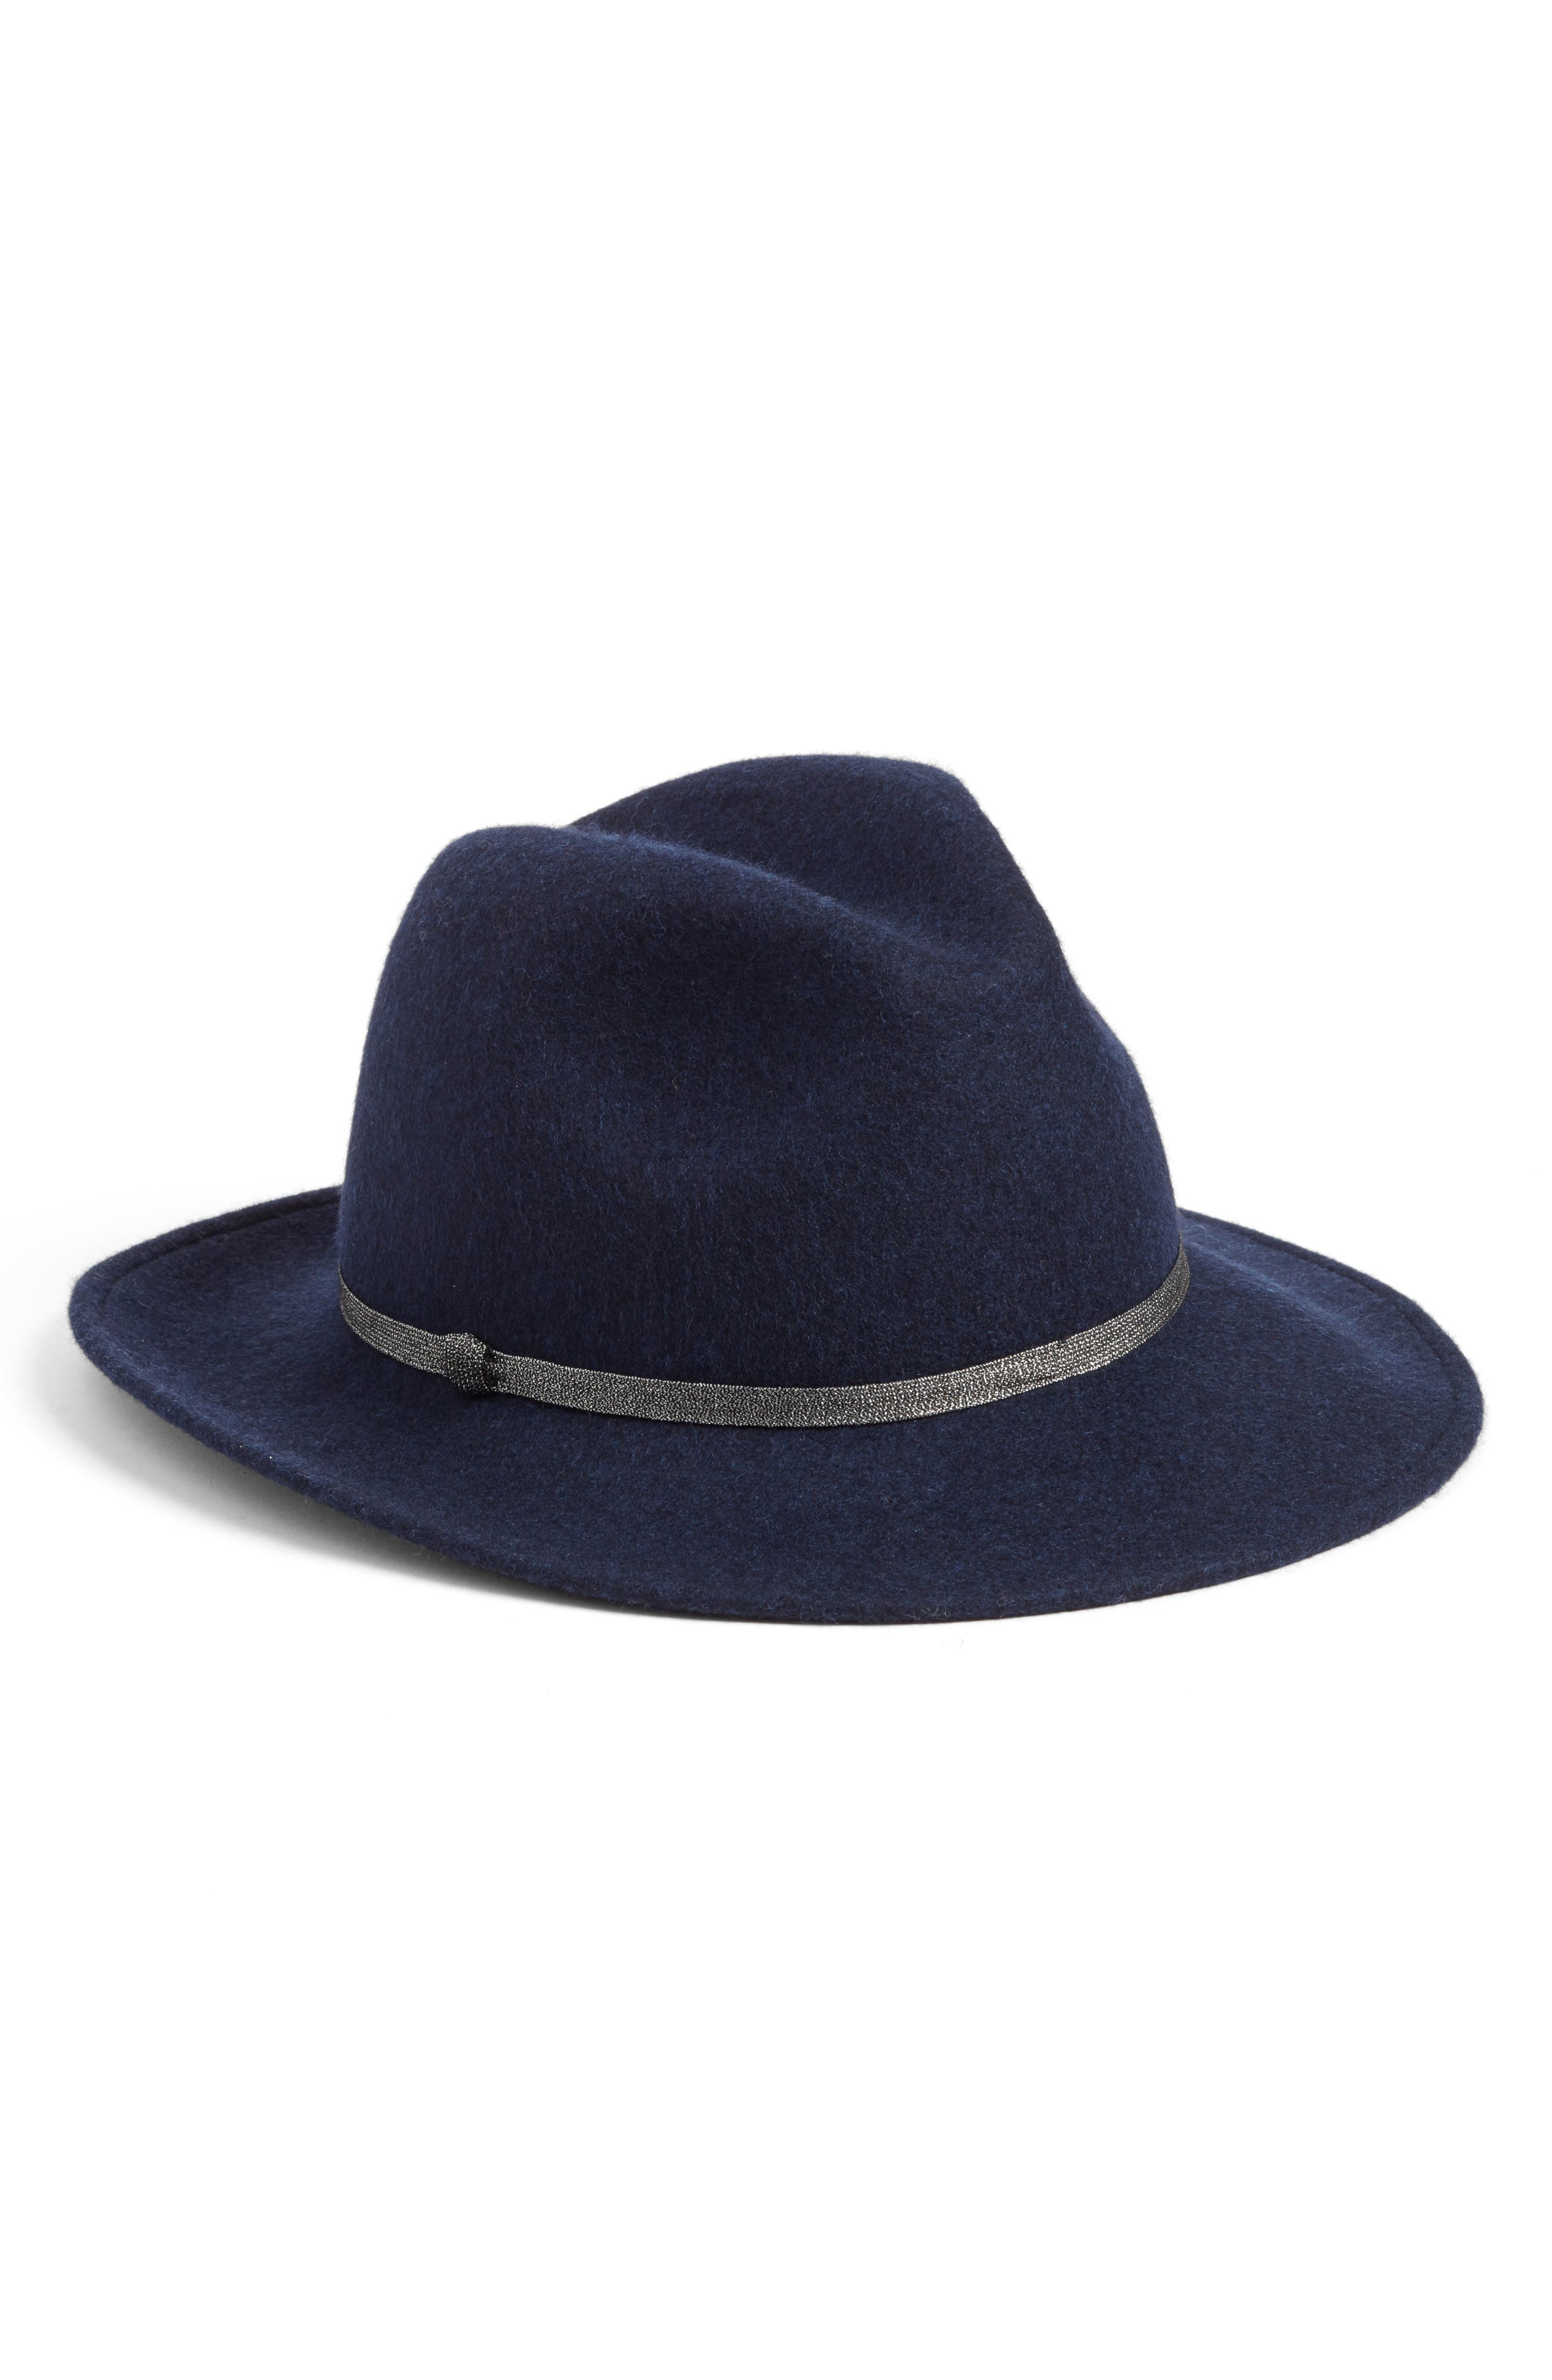 Metallic Band Wool Felt Panama Hat,                             Main thumbnail 1, color,                             Navy Heather